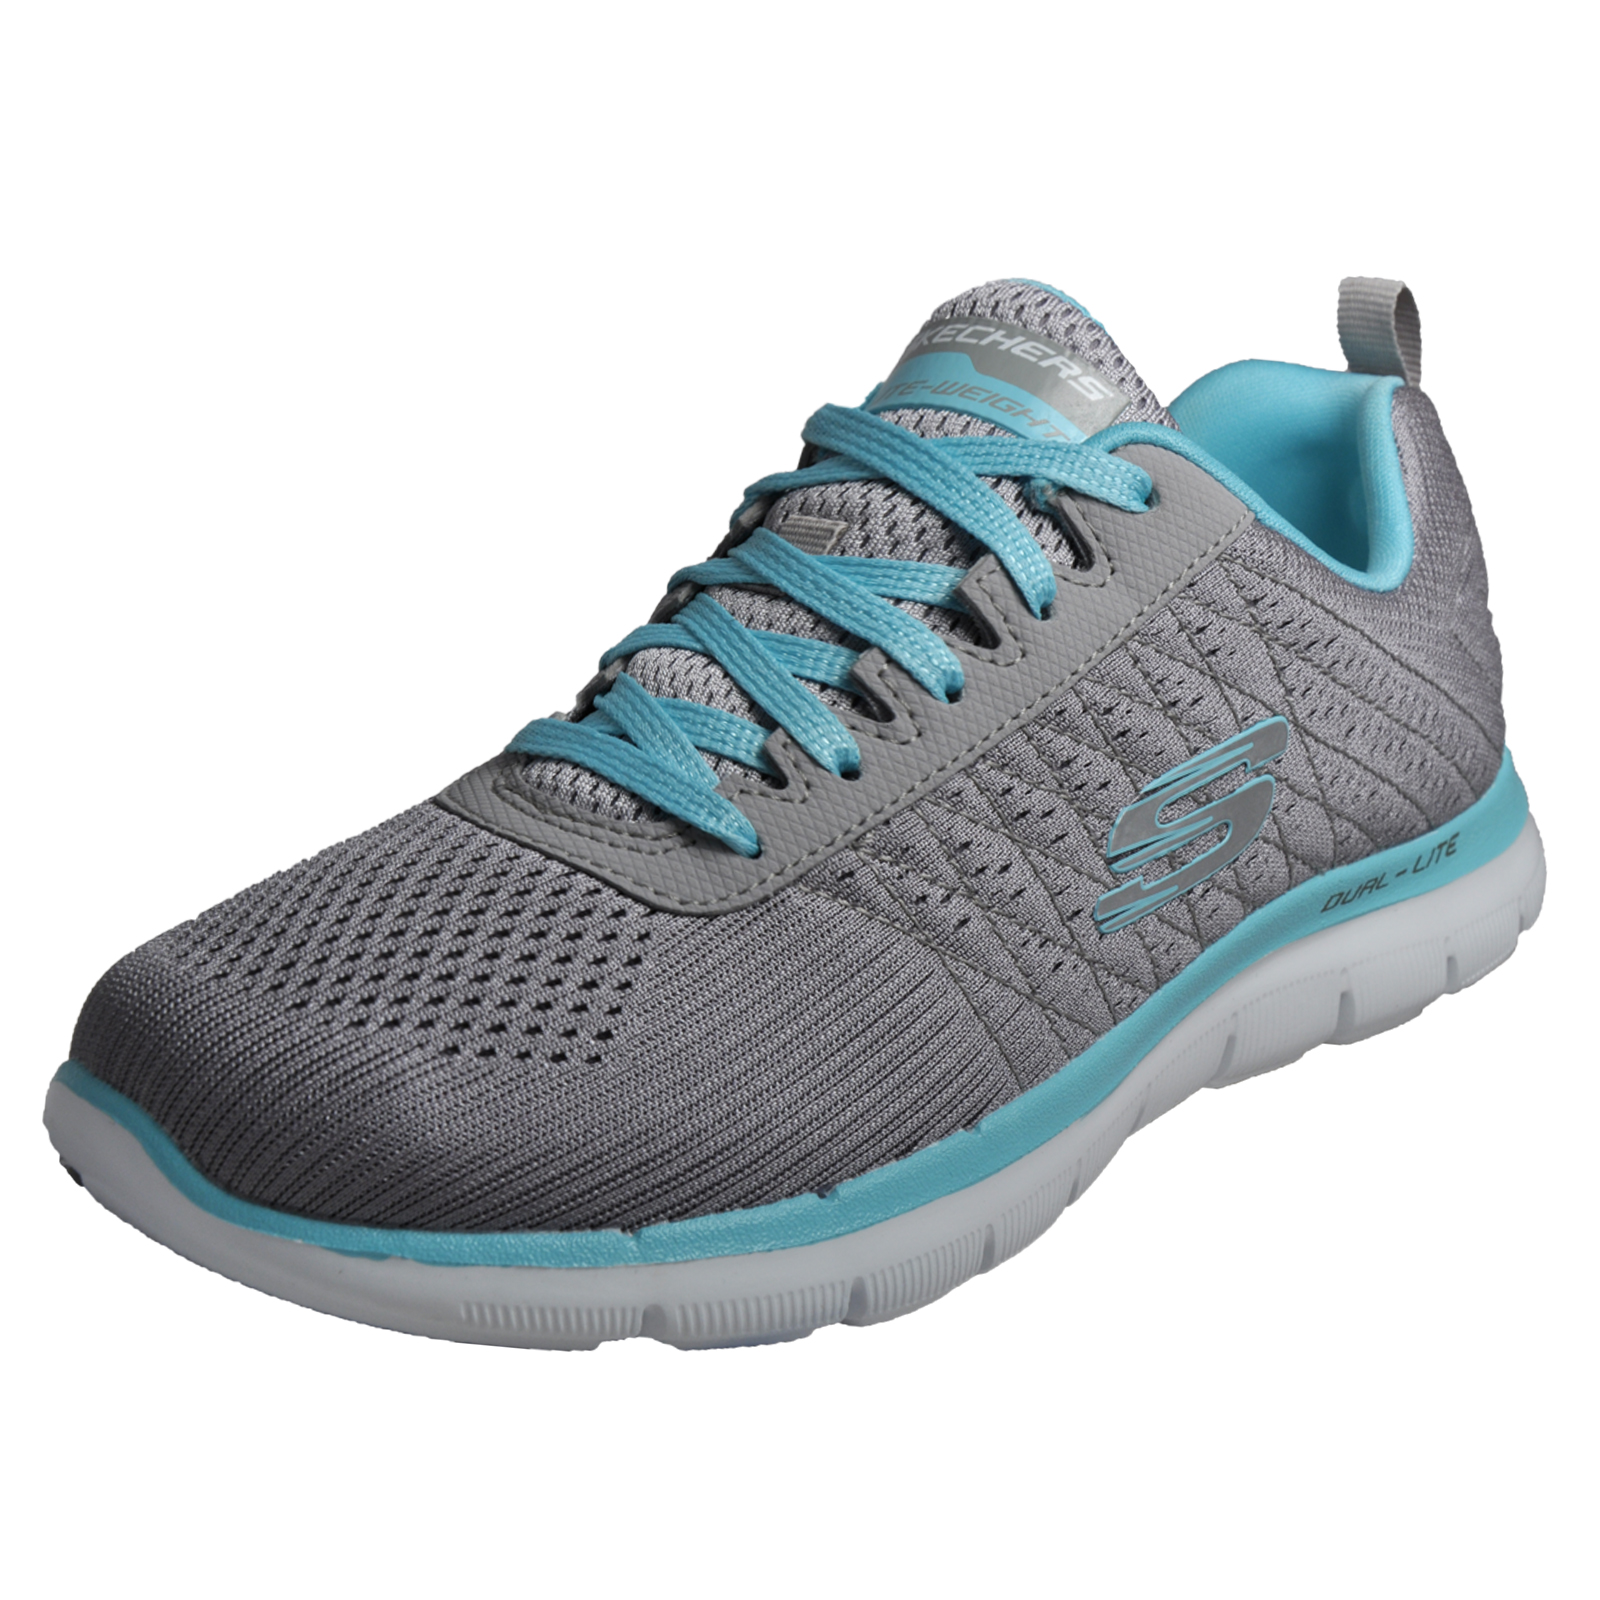 brand new 3eeec b6021 Details about Skechers Flex Appeal 2.0 Womens Memory Foam Running Shoes Gym  Trainers Grey